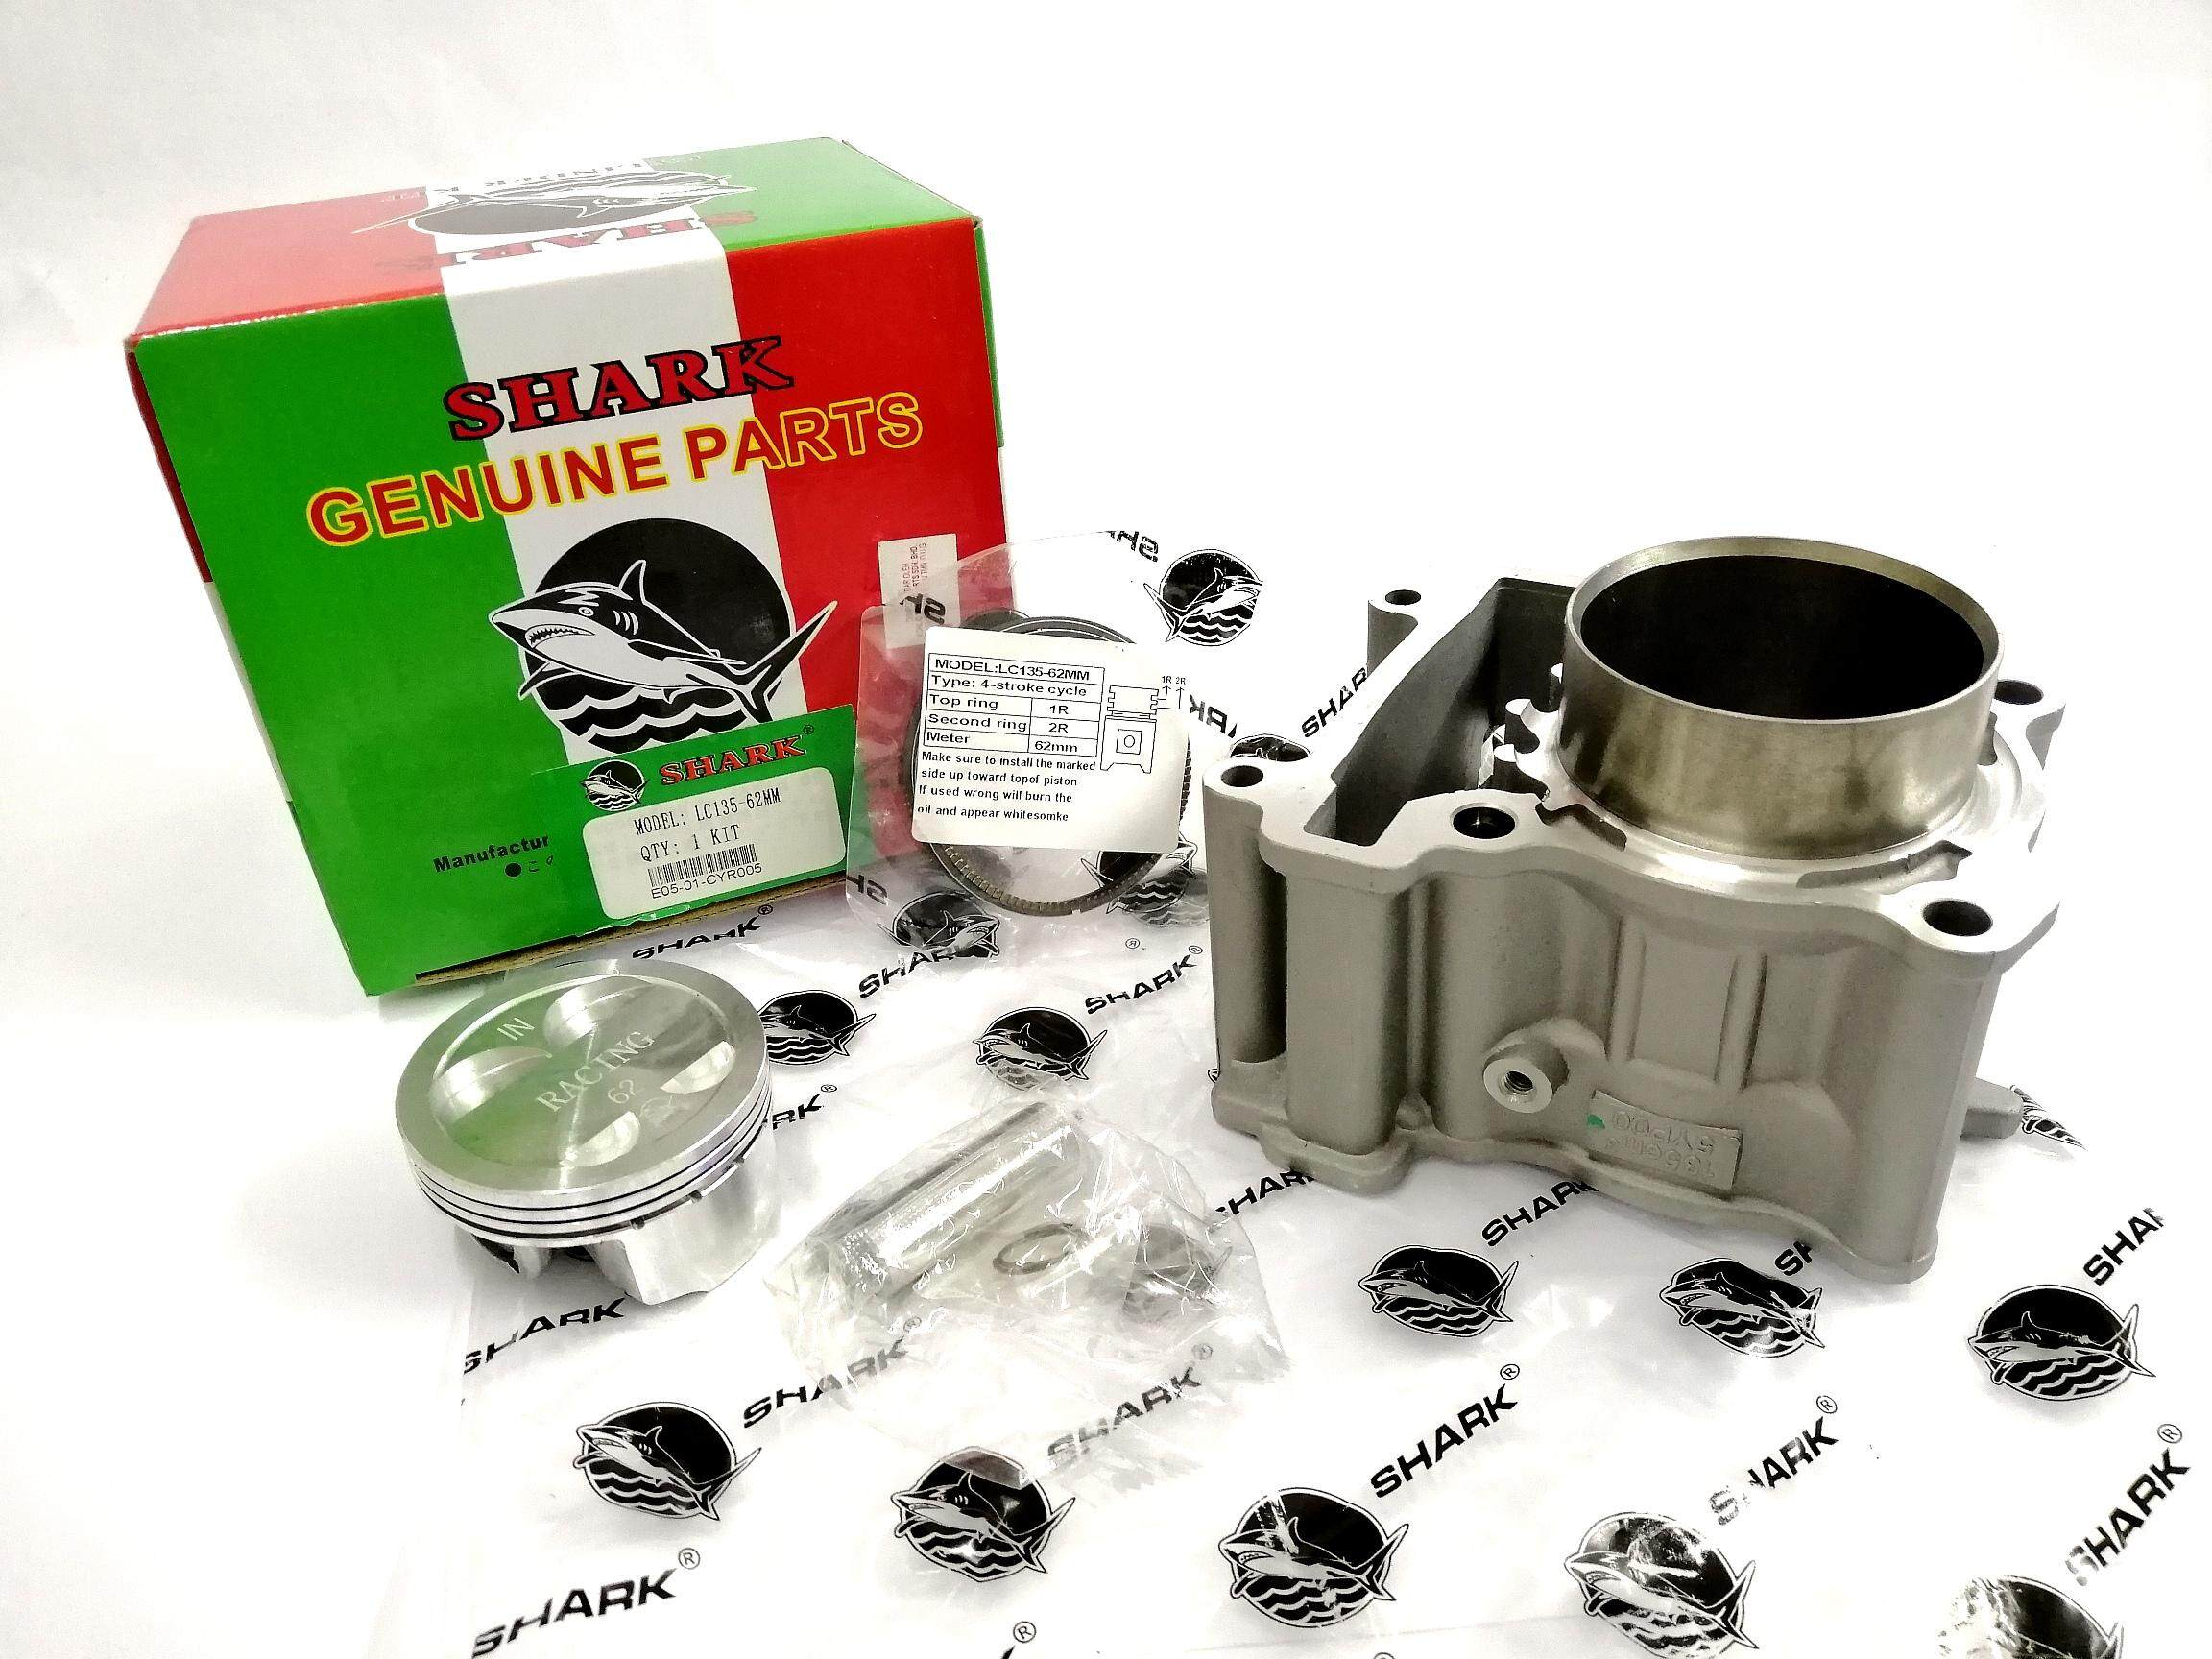 Moto Parts & Spares - Buy Moto Parts & Spares at Best Price